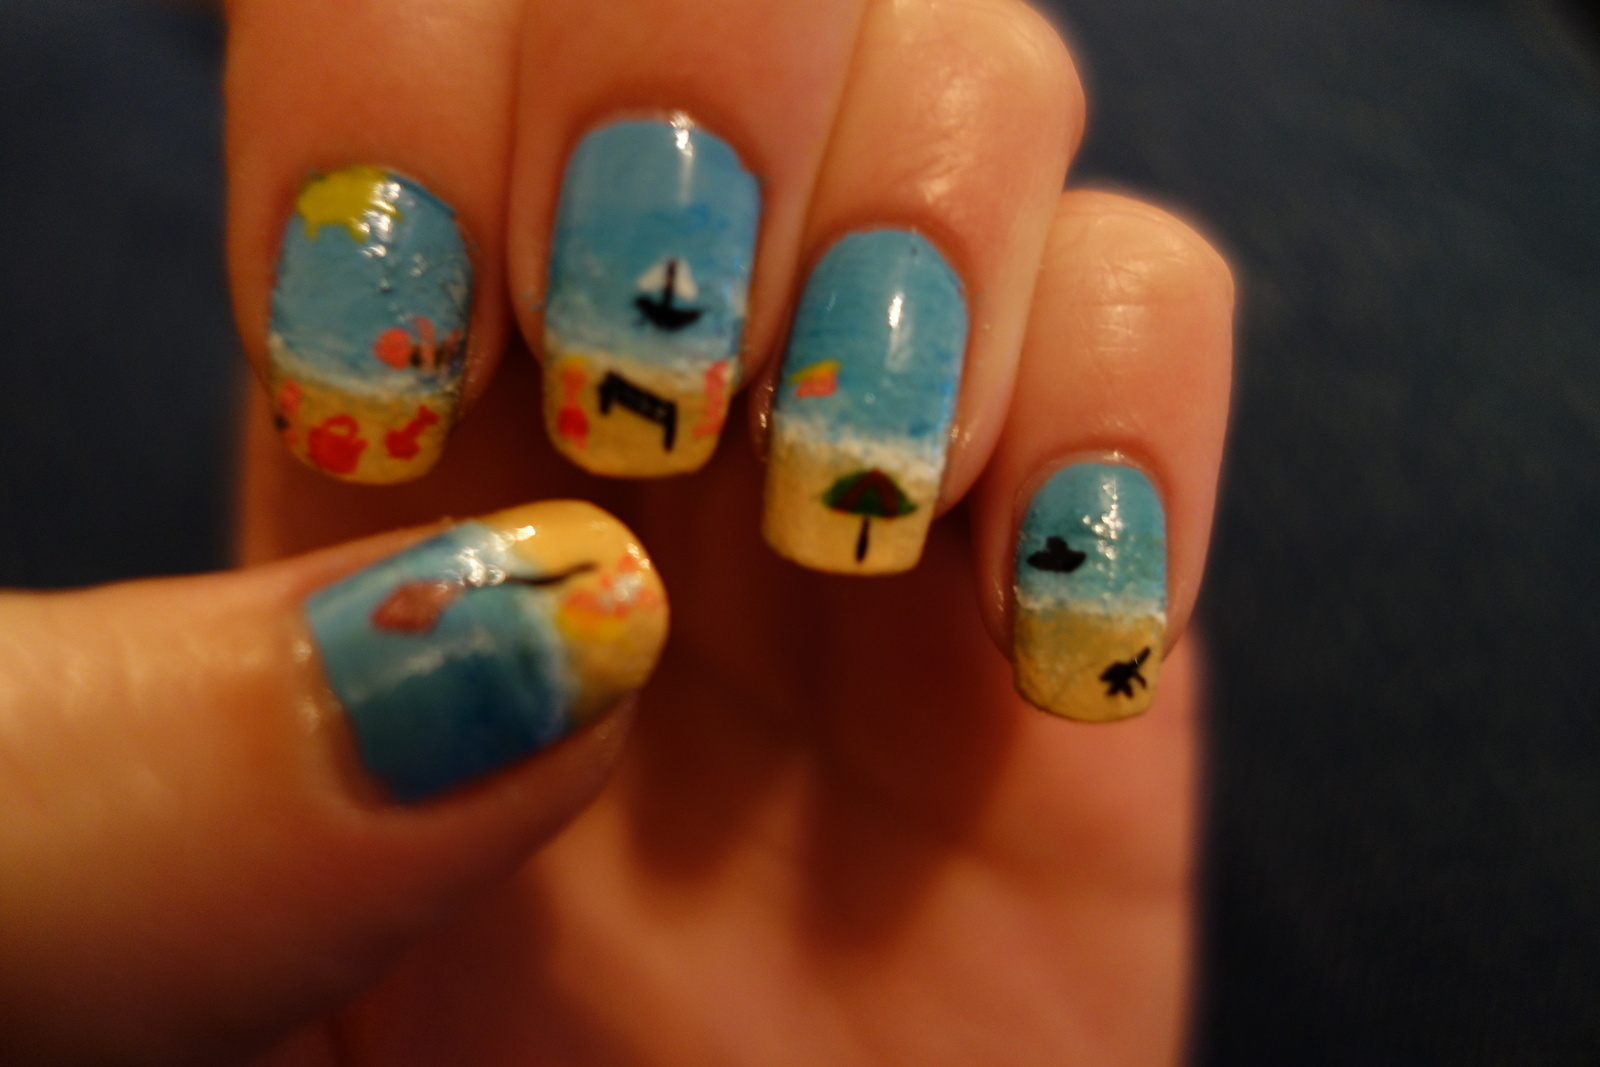 Seaside Beach Nails 183 A Beach Nail Manicure 183 Art Beauty And Nail Painting On Cut Out Keep